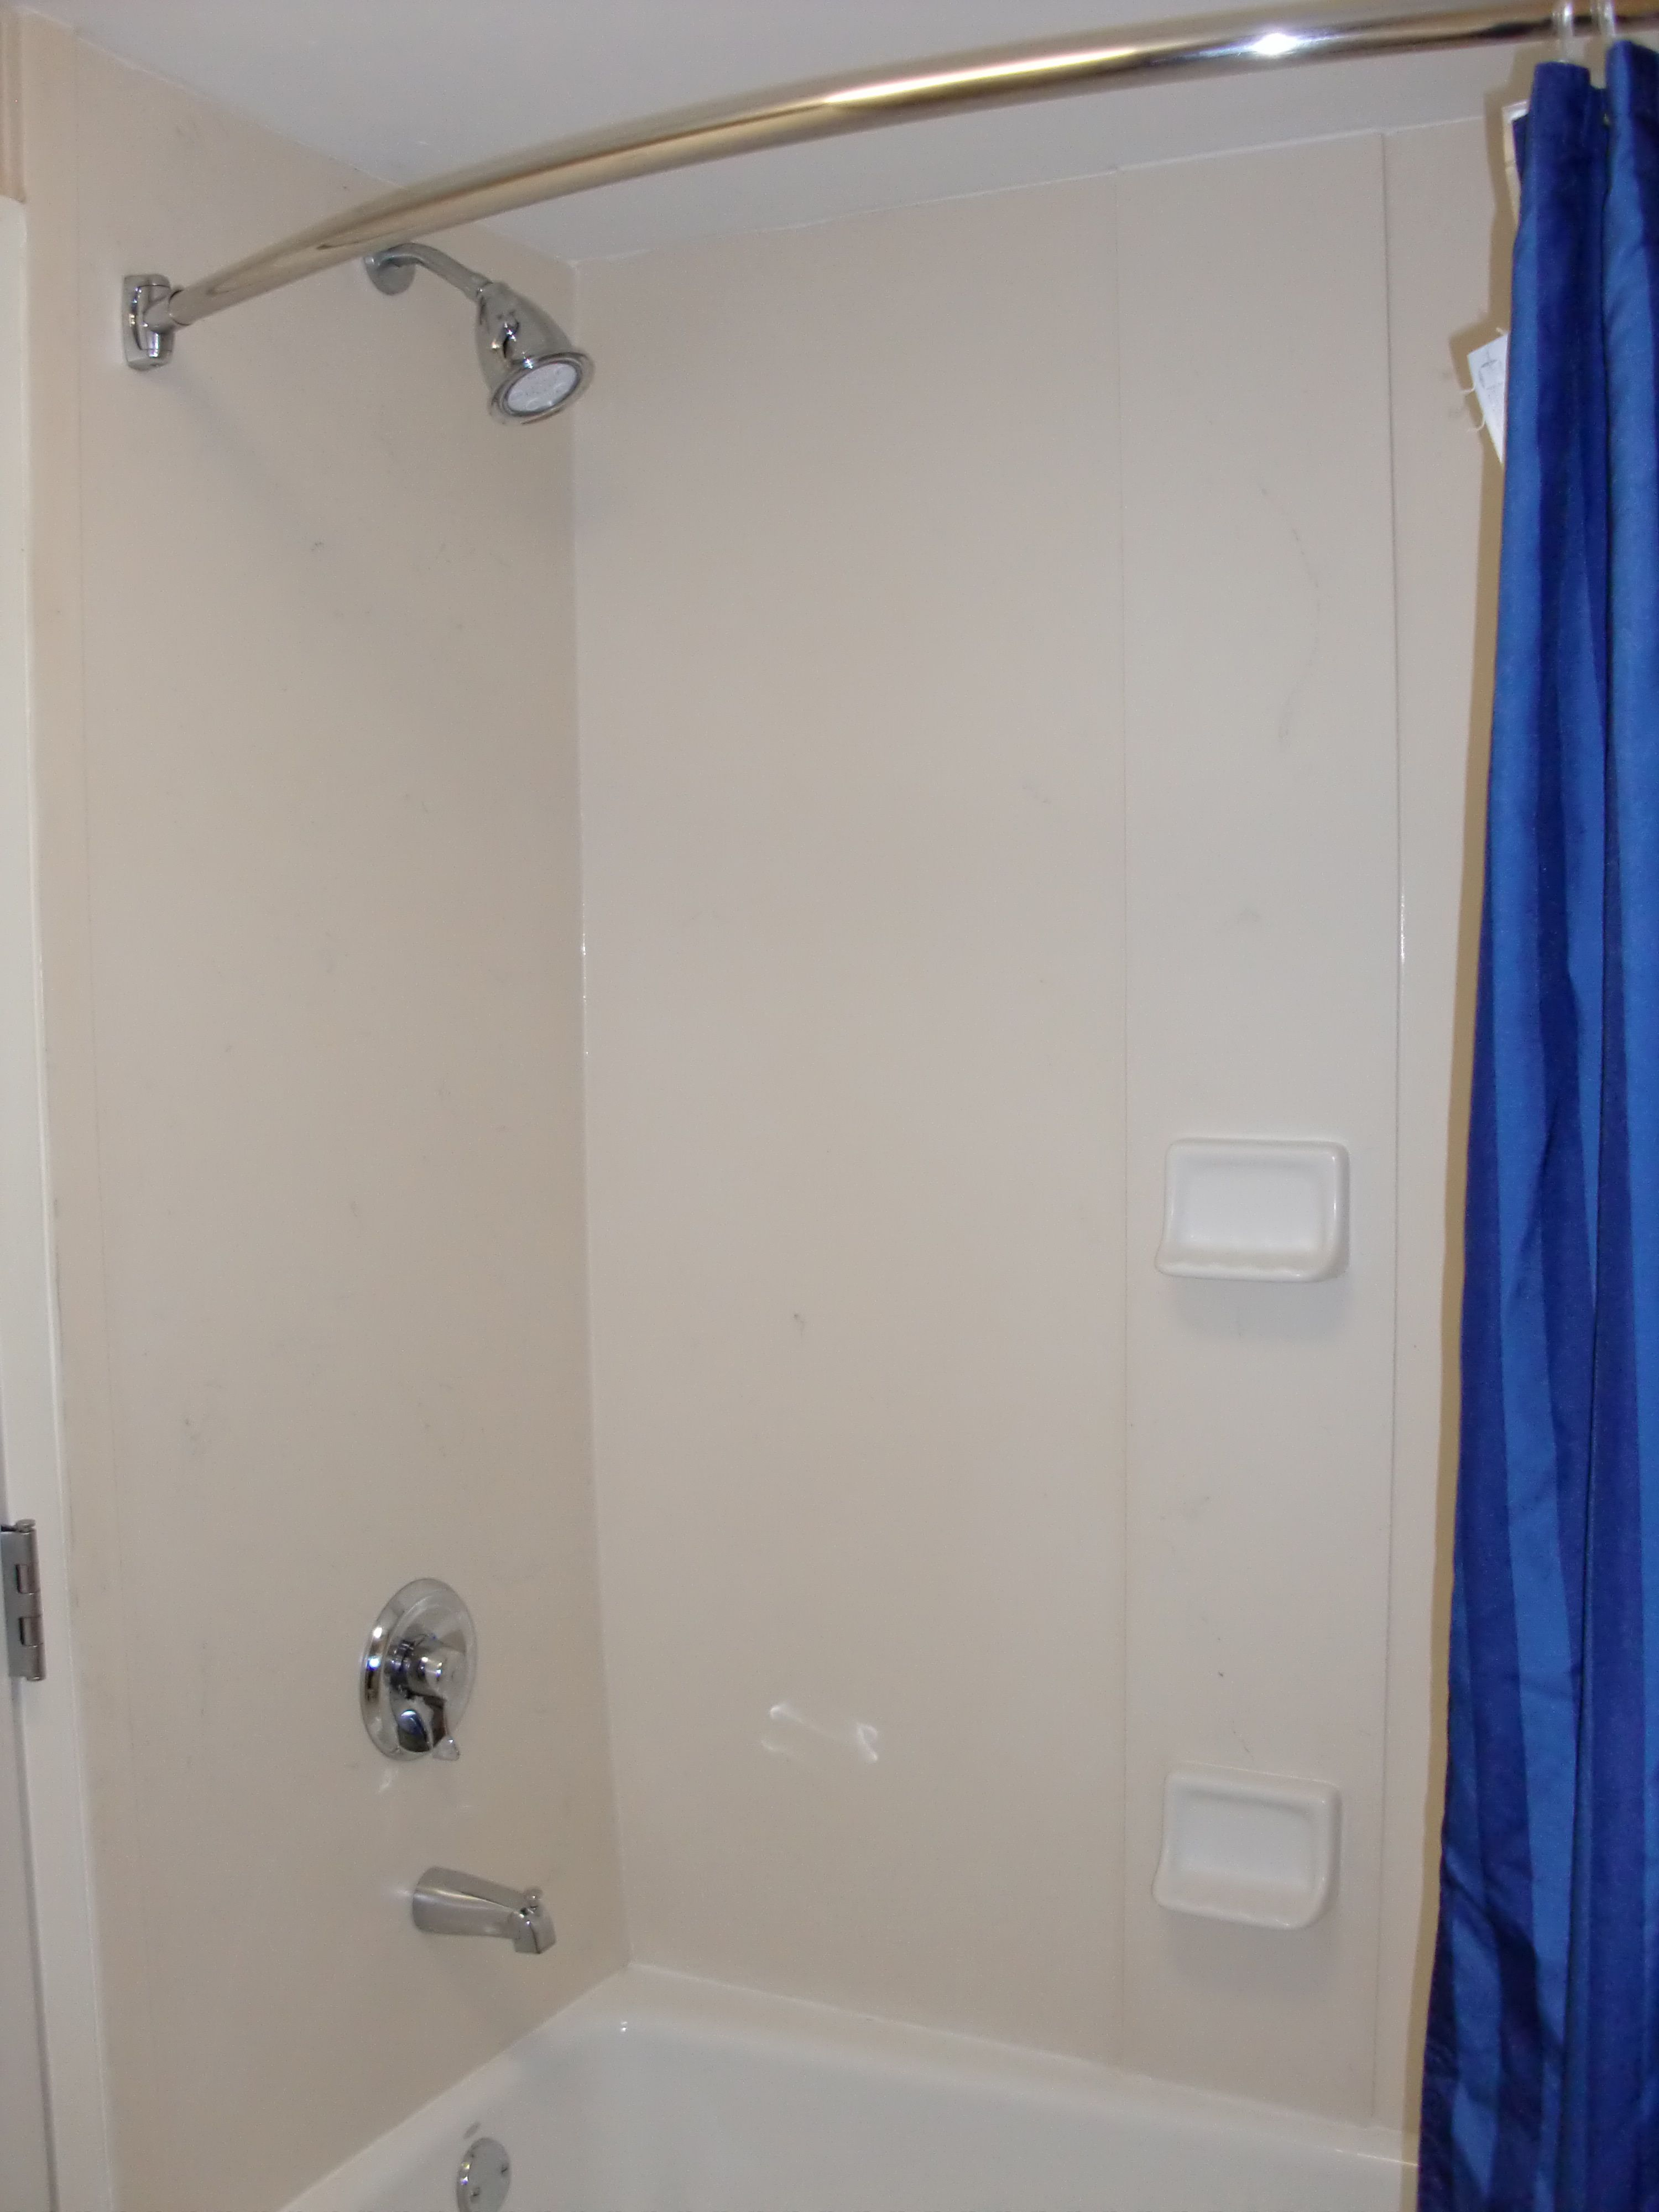 Courtyard by Marriott Wilmington, NC = awful | noplasticshowers